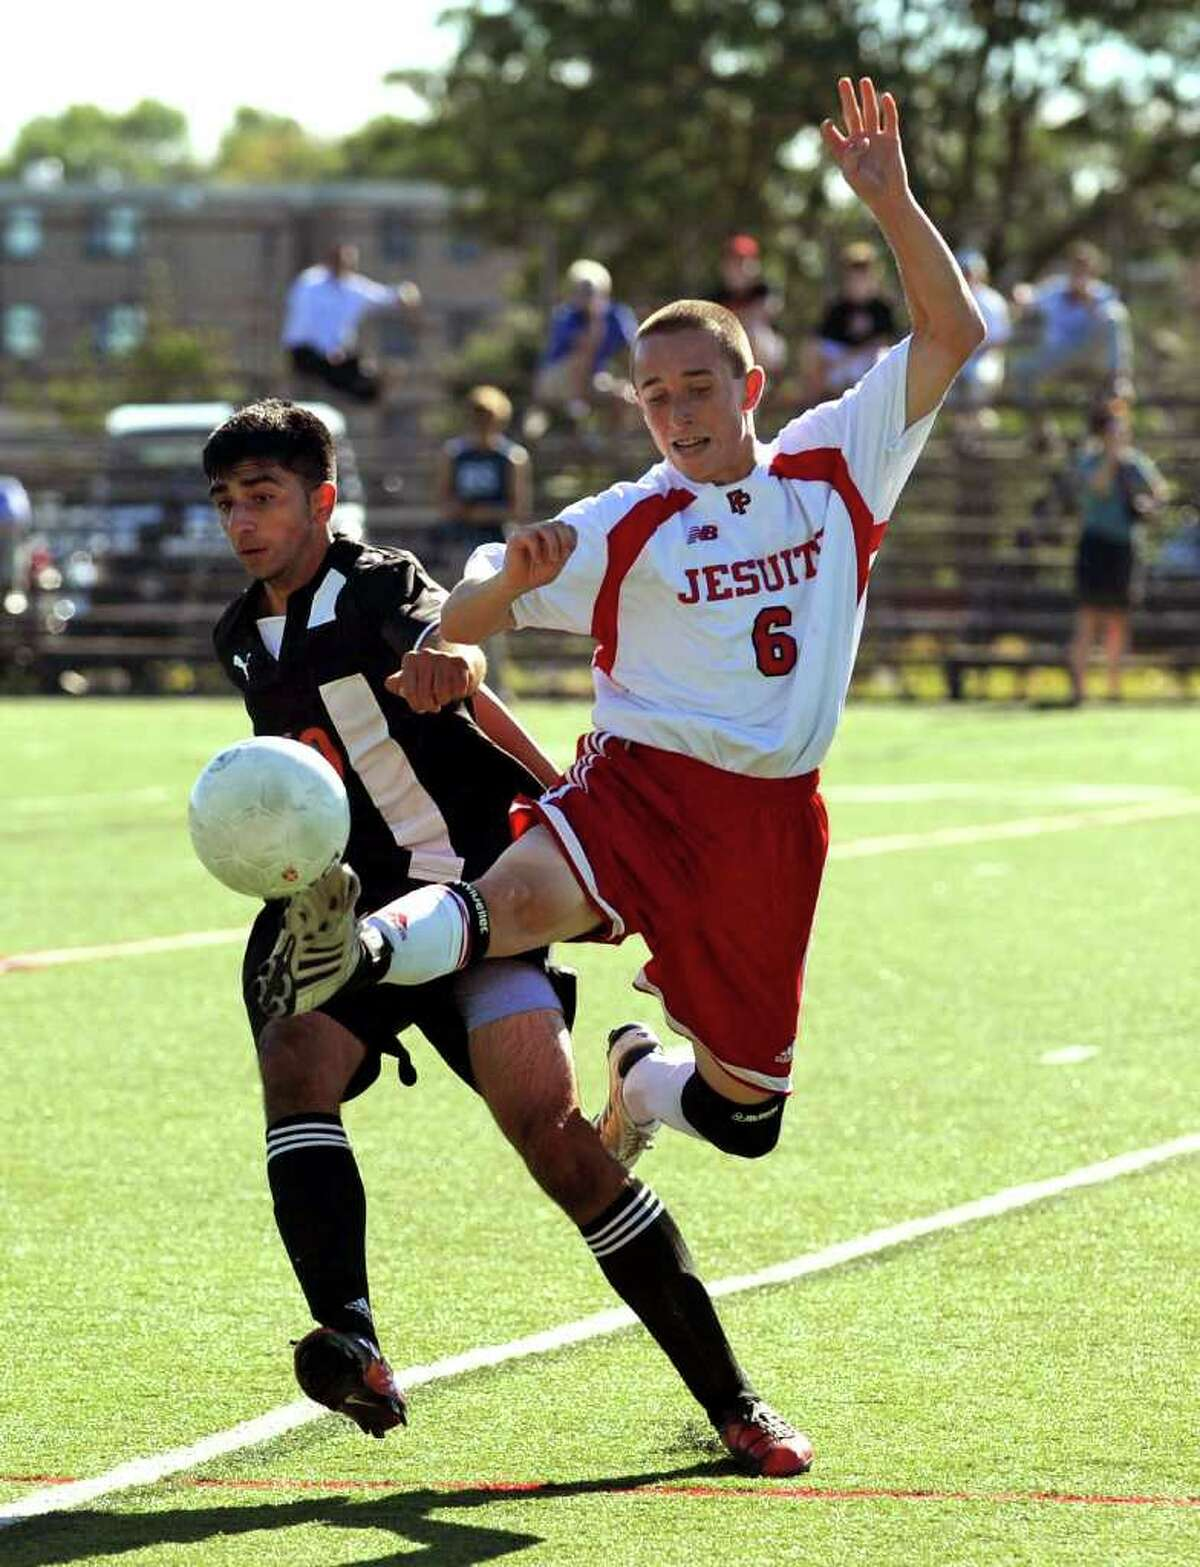 Fairfield Prep's #6 Pat Connolly, right, leaps in to intercept the ball from Shelton's #19 Jawaad Qureshi, during soccer action at Fairfield University in Fairfield, Conn. on Tuesday September 14, 2010.